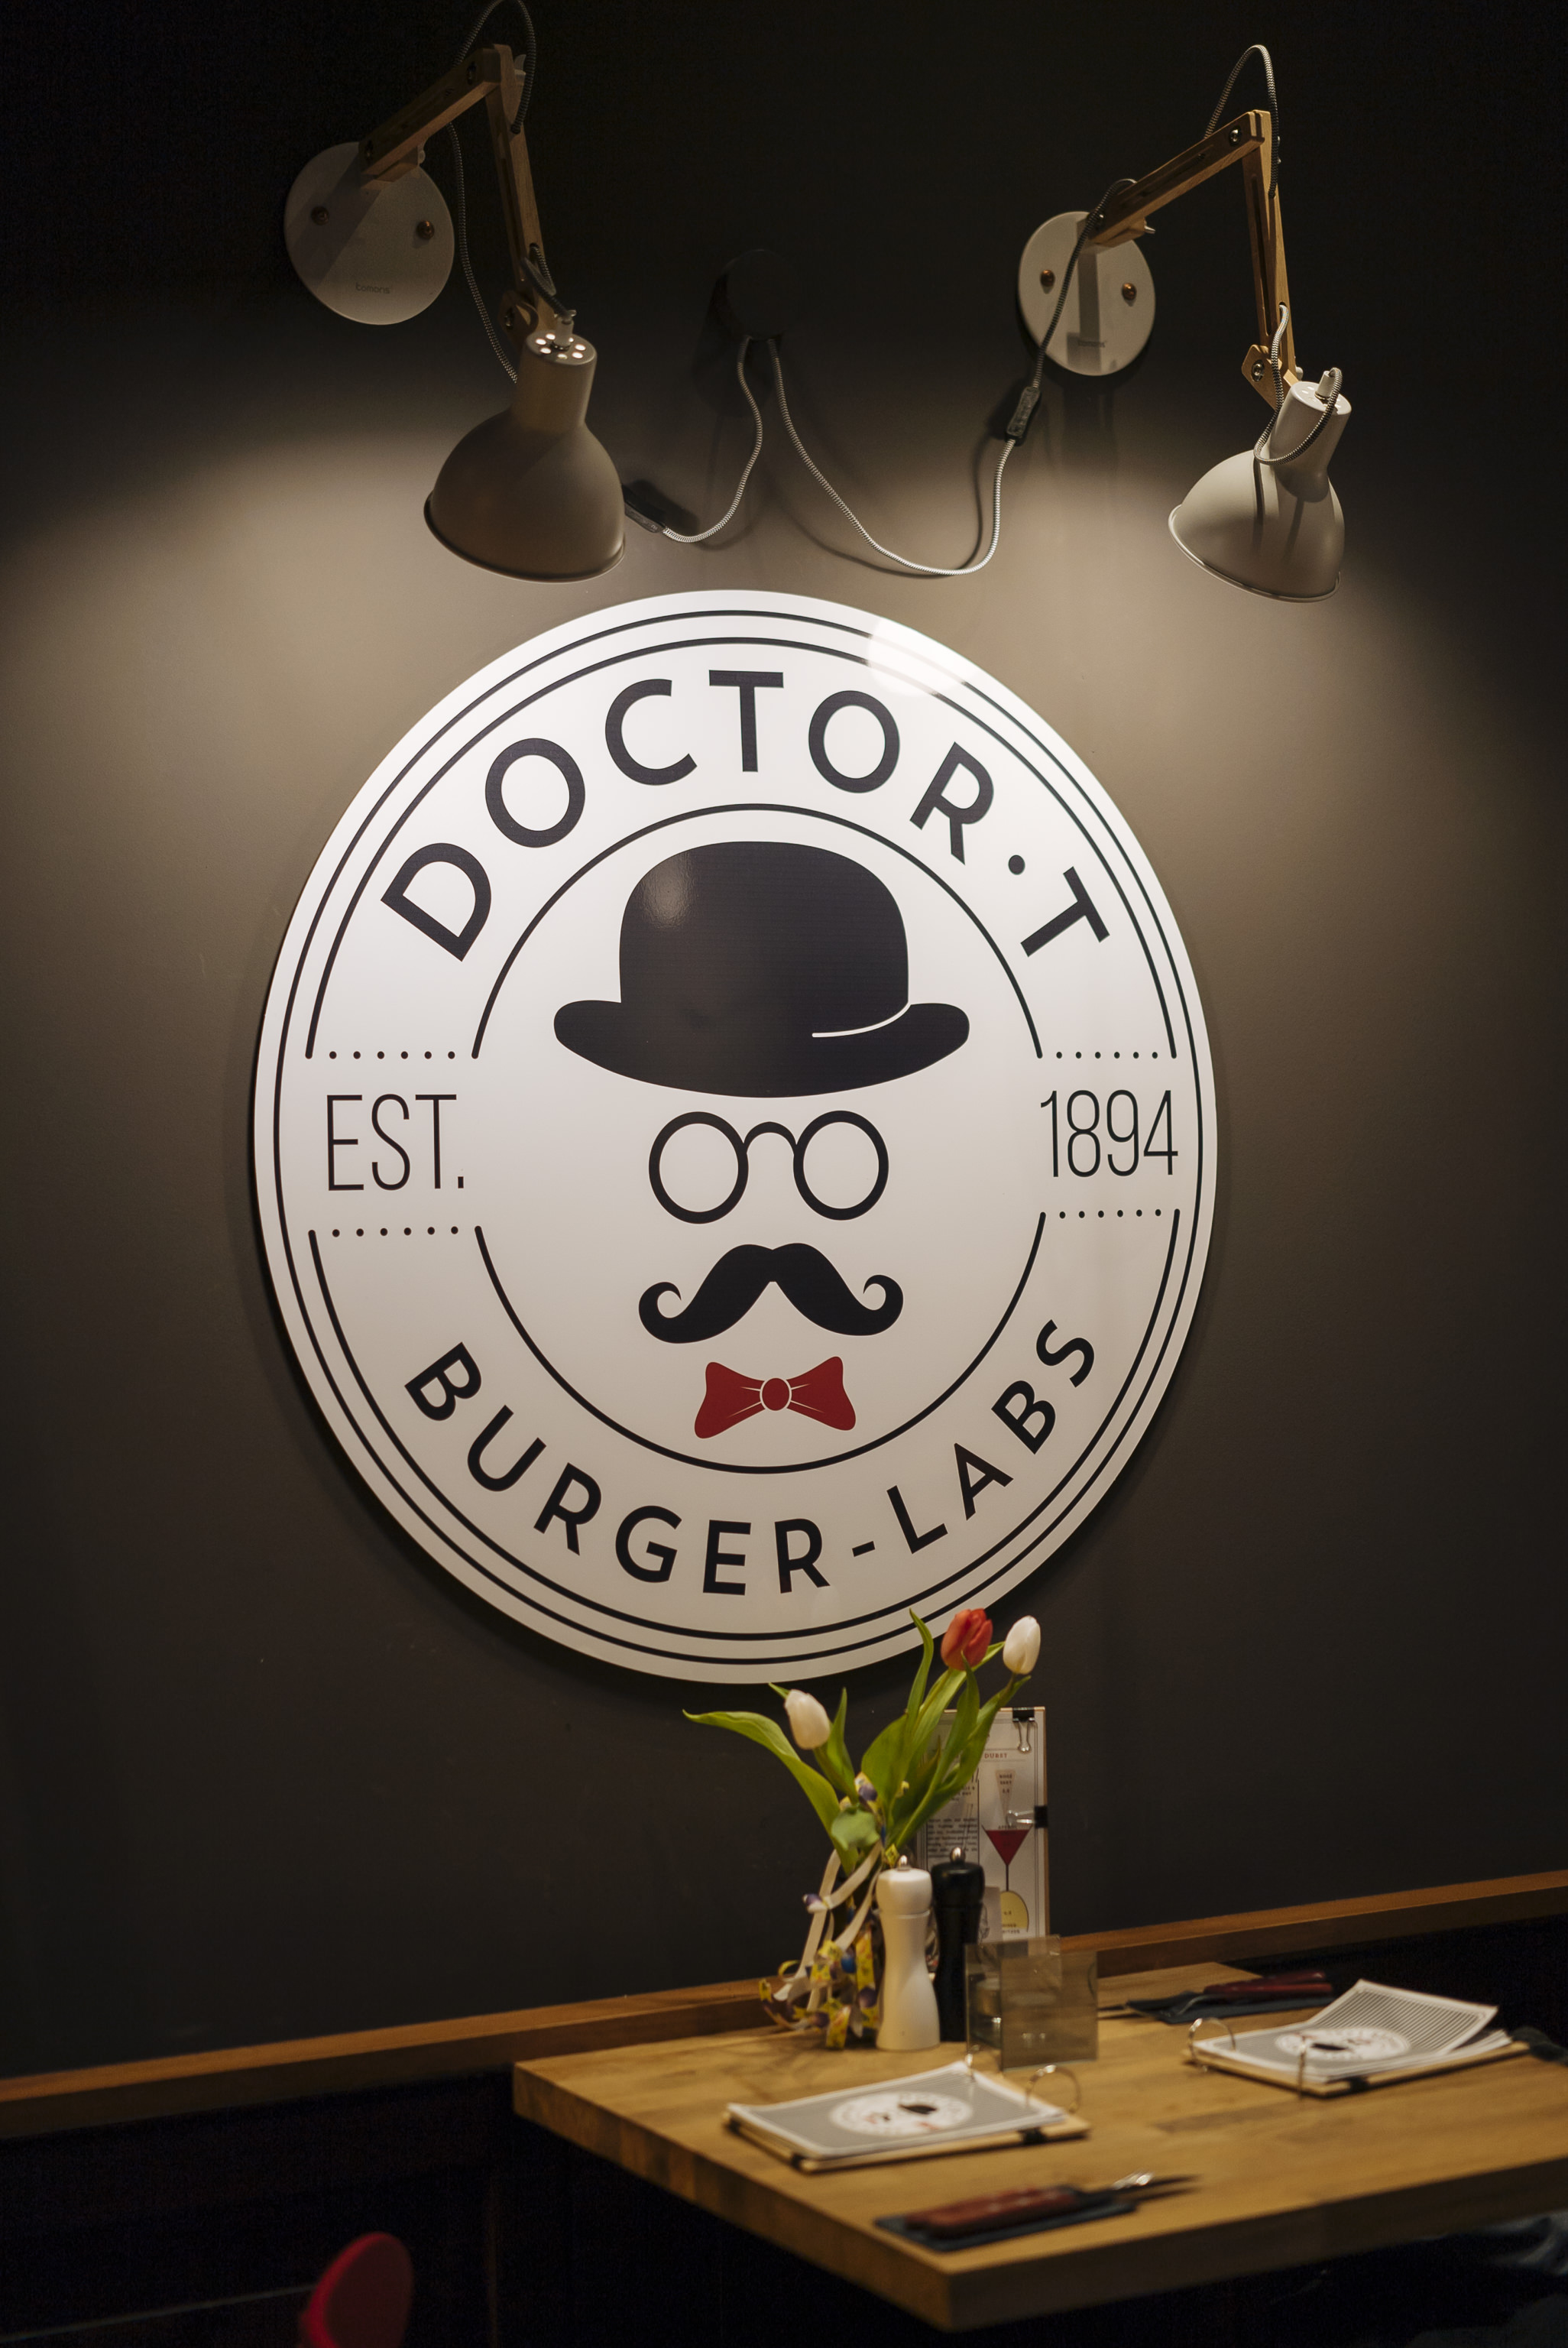 doctor_t_burger-labs_04.jpg